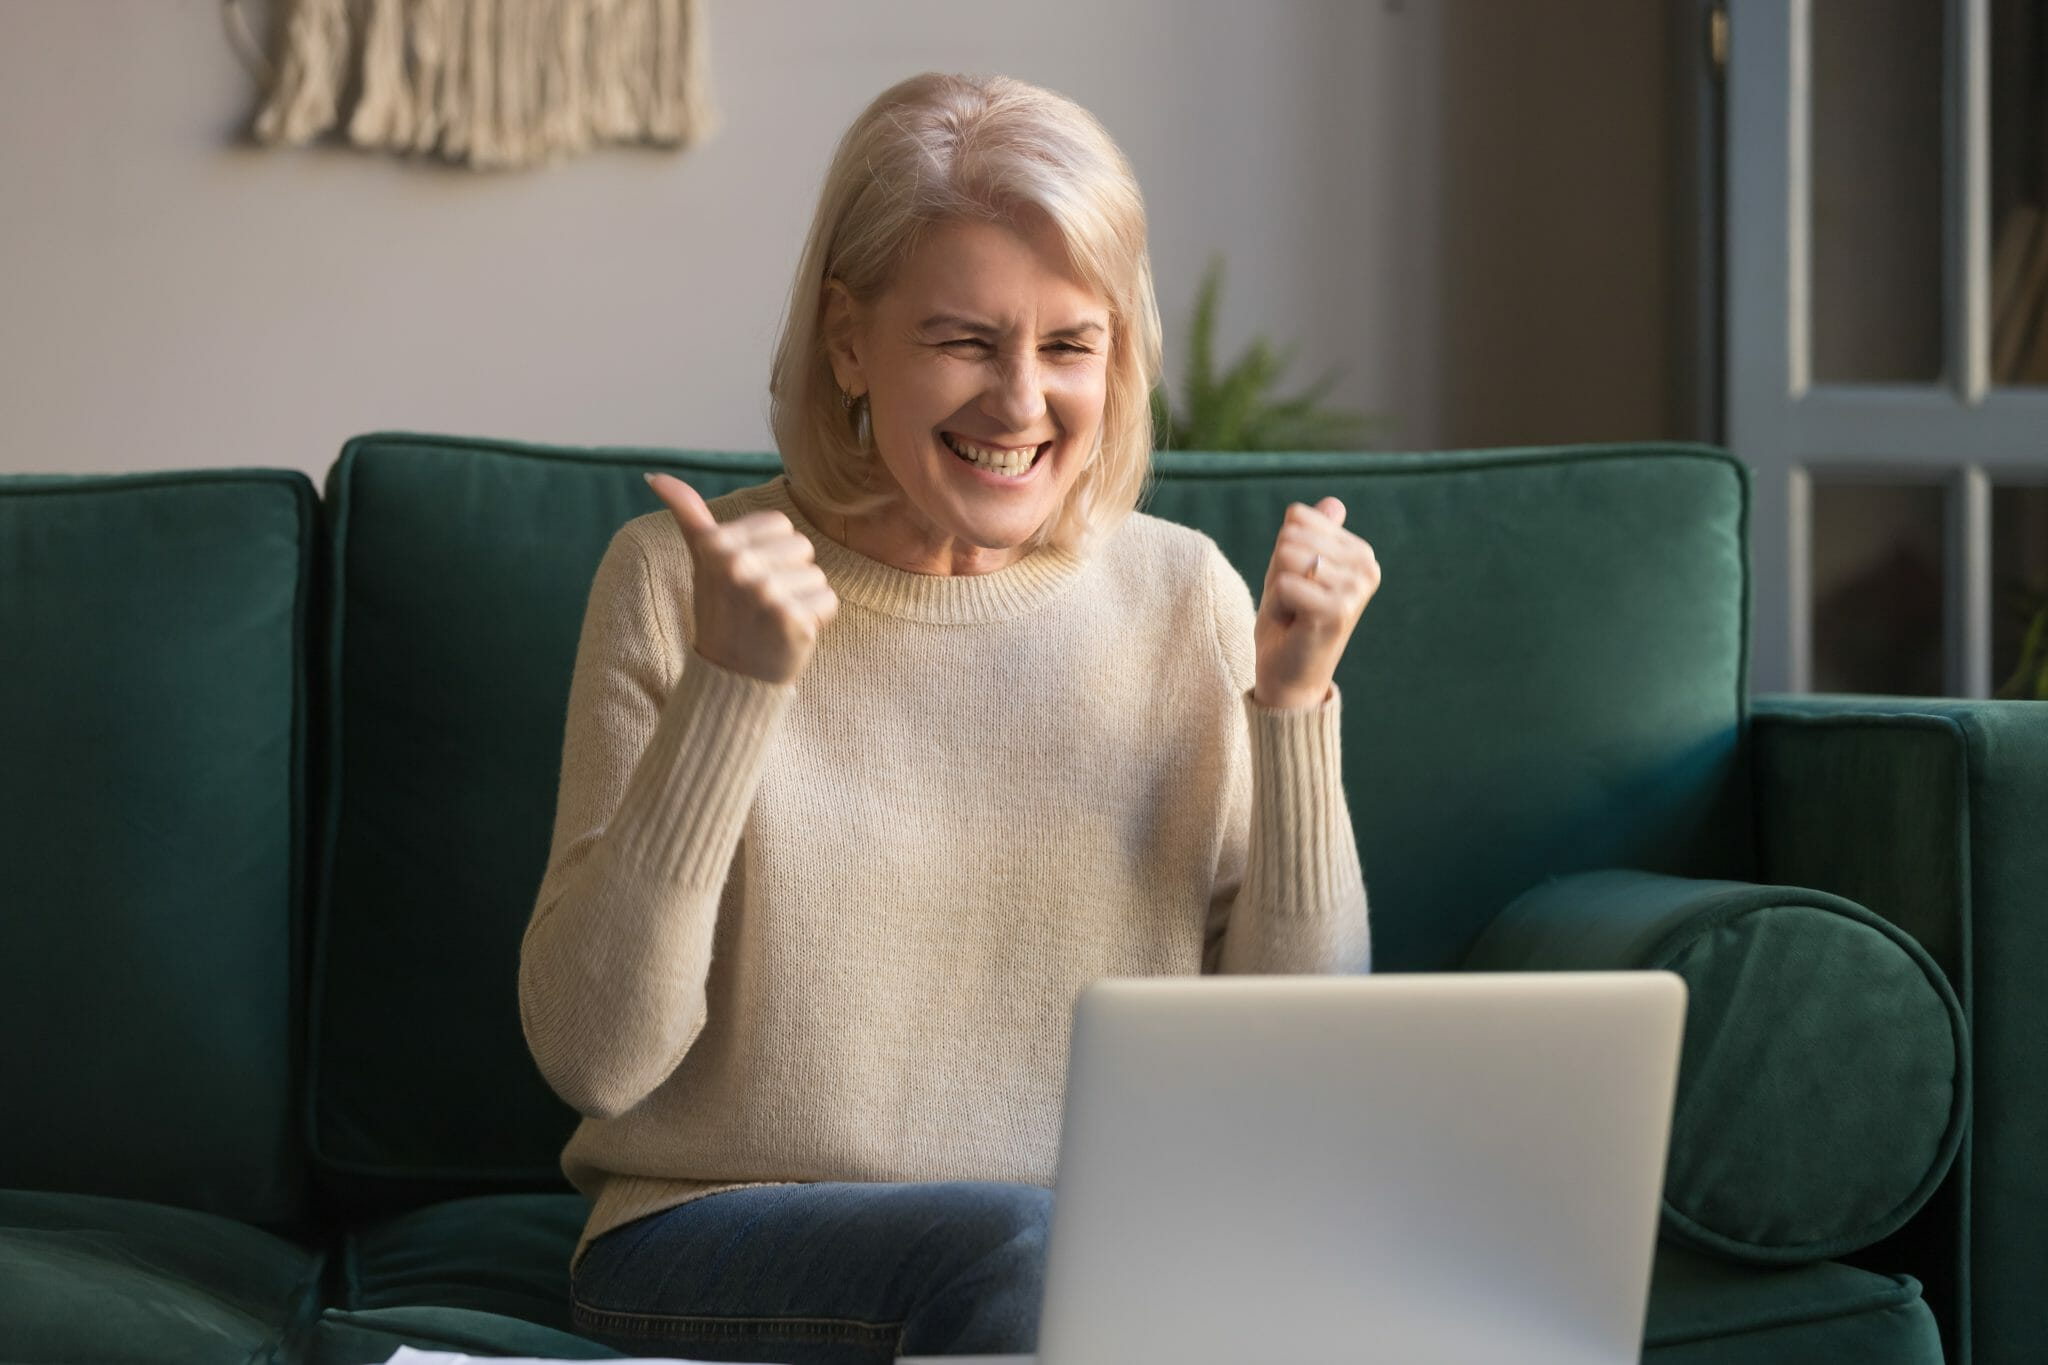 Woman giving herself a thumbs up while looking at a laptop